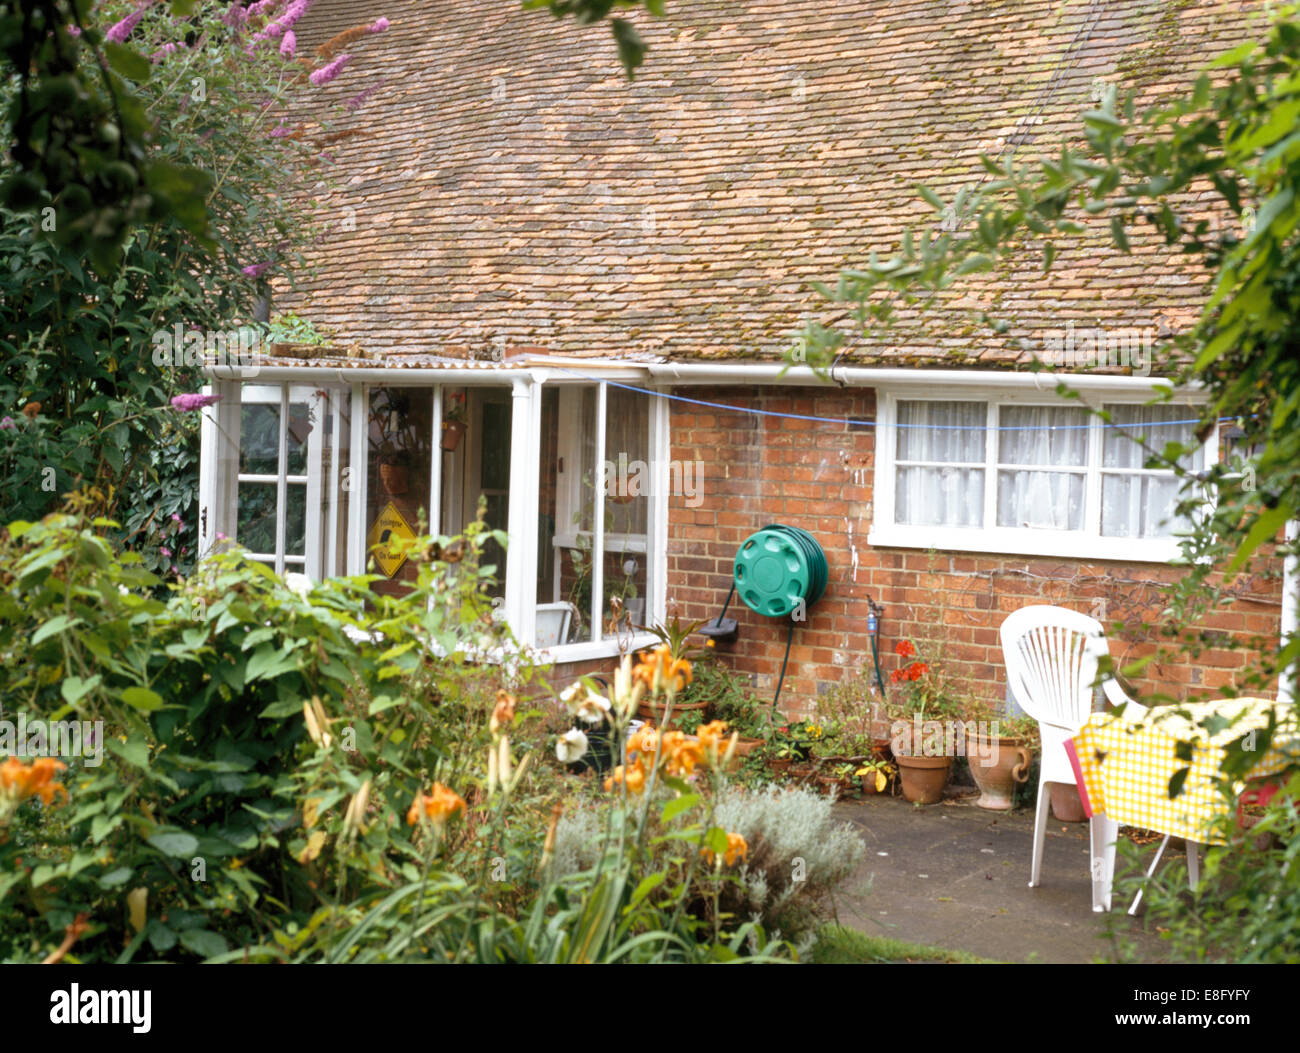 Hose Reel On Wall Of Brick Cottage With Small Conservatory Style Glass  Porch And Paved Patio